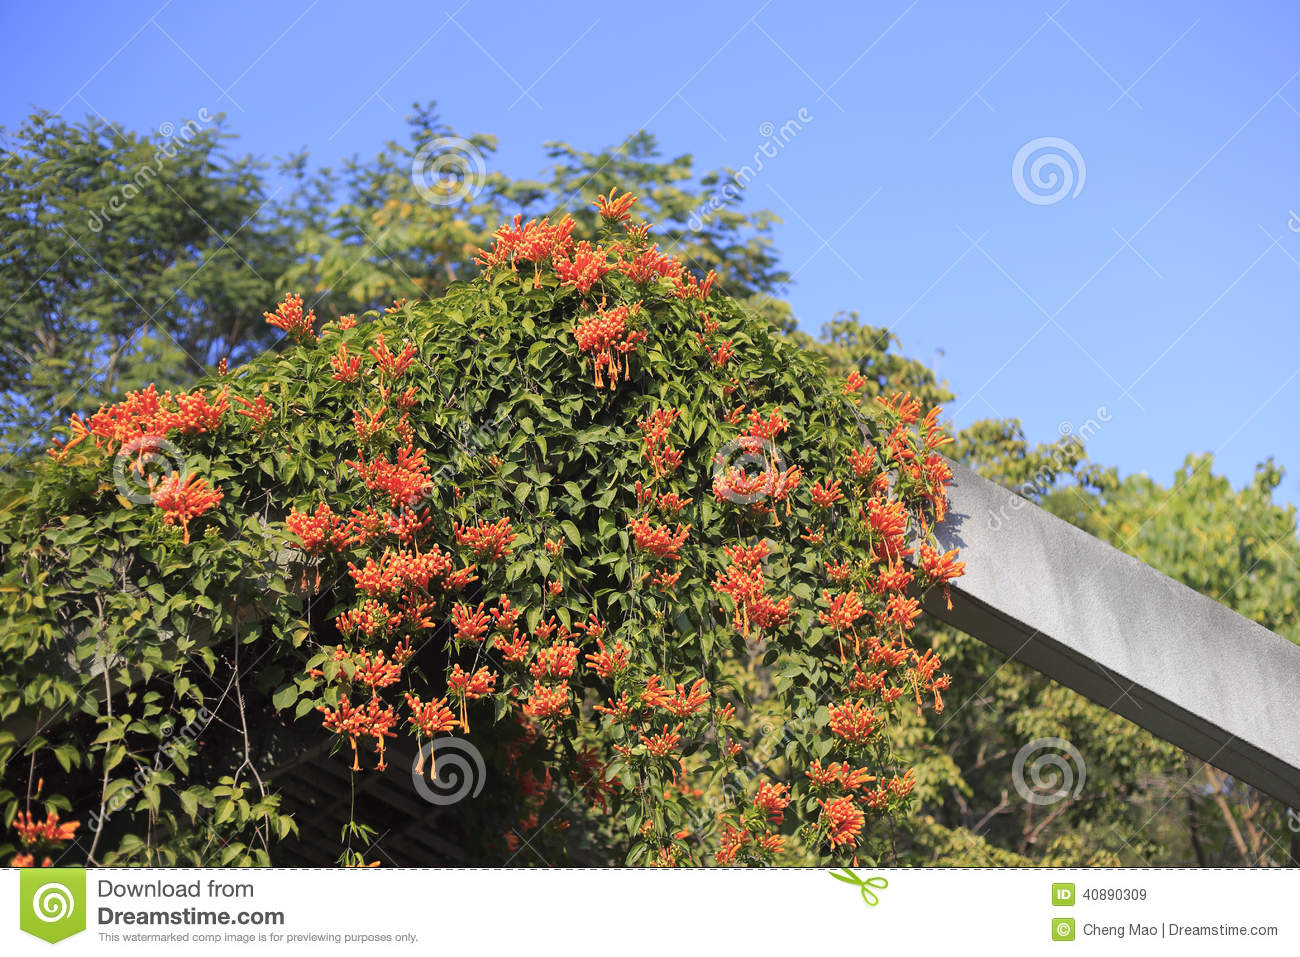 The Firecracker Flowers Stock Photo - Image: 40890309